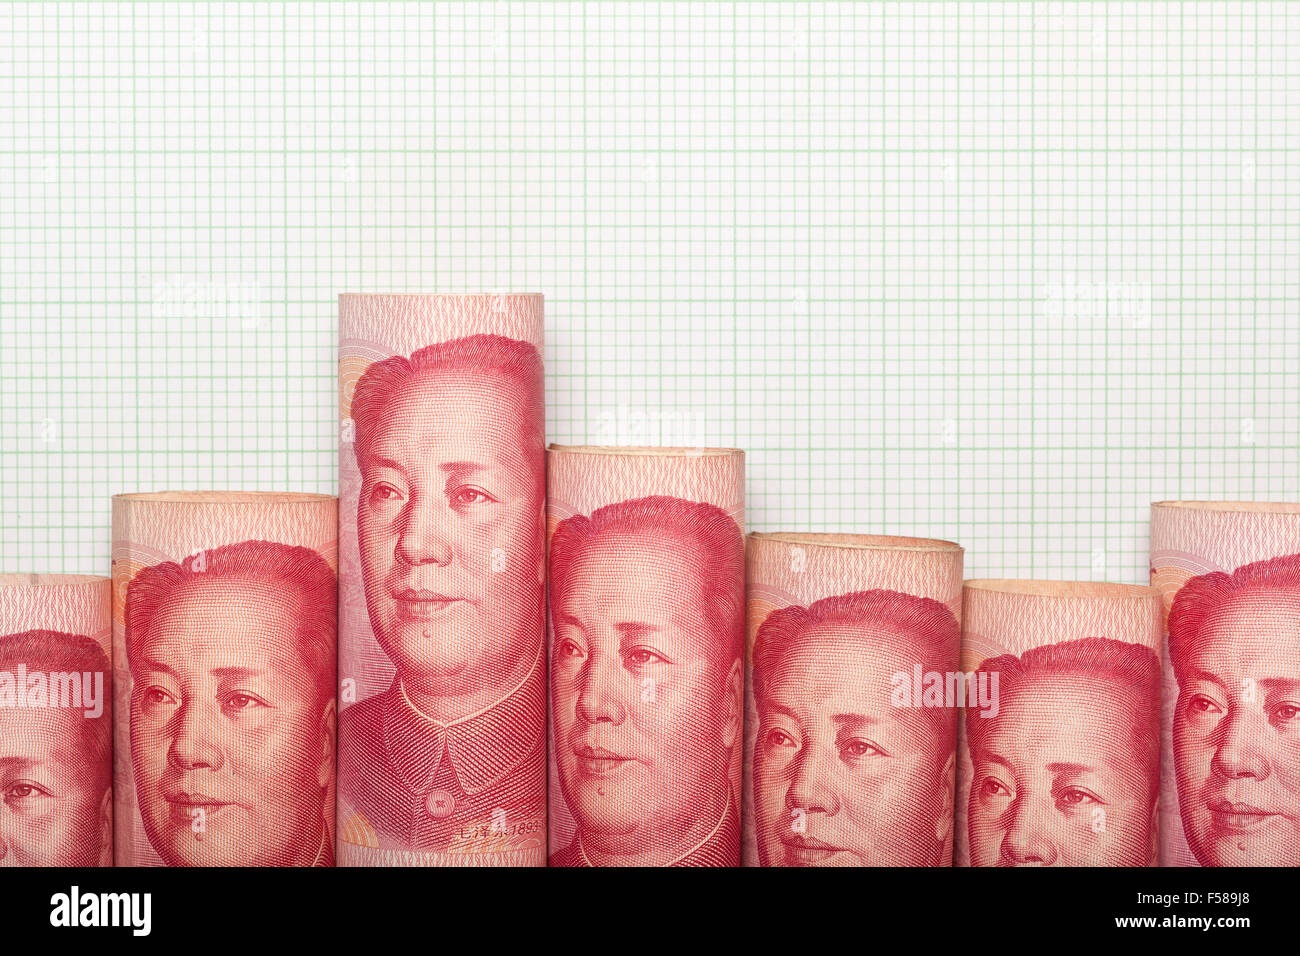 Chinese currency forming a downtrend graph - Stock Image